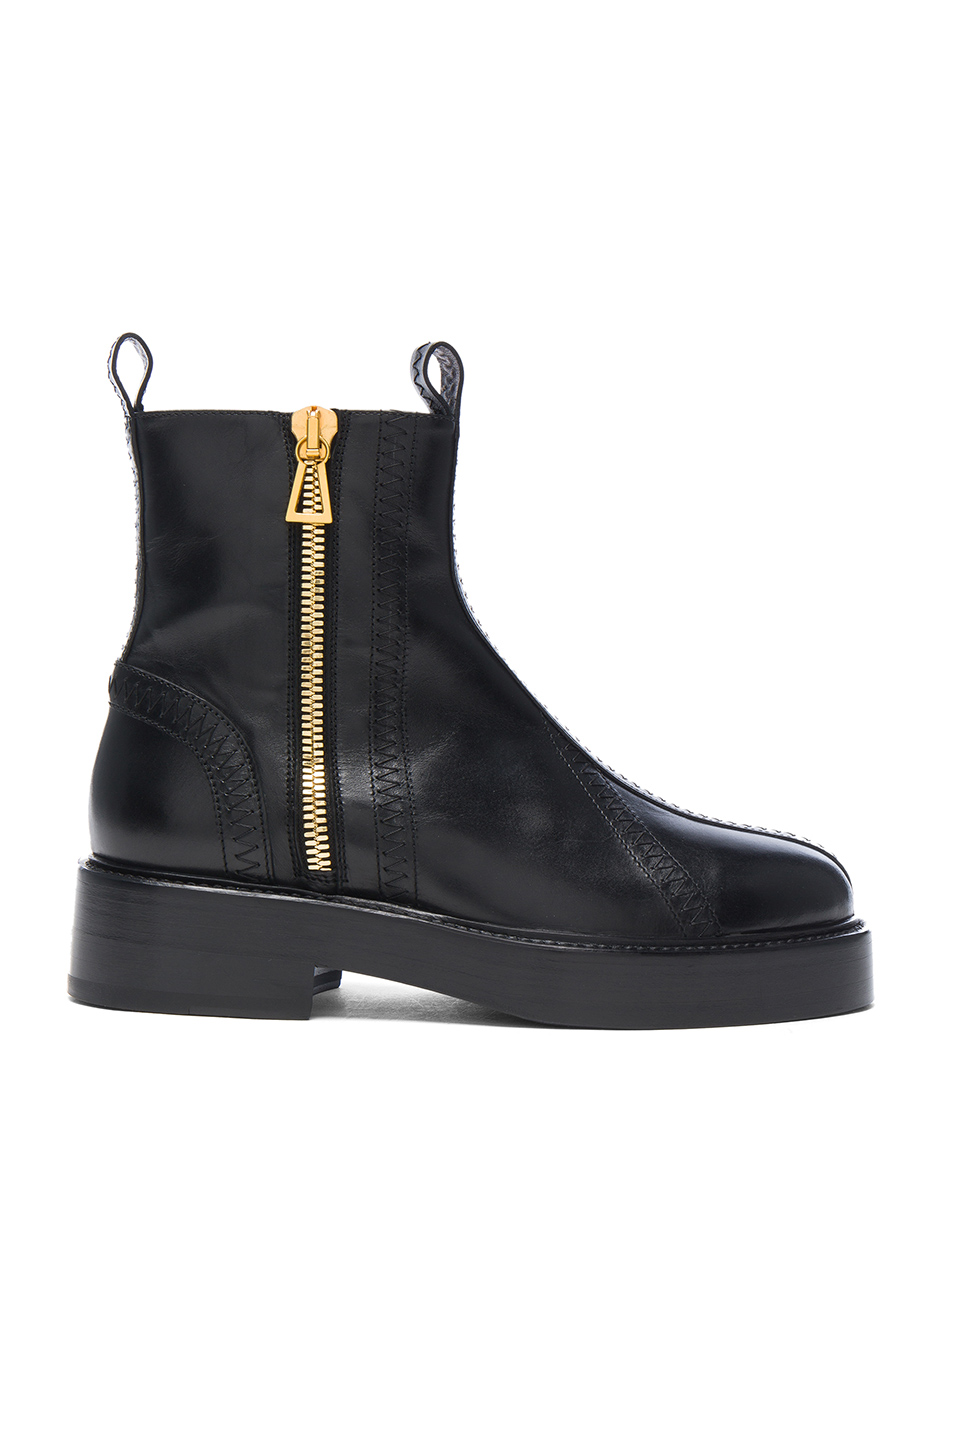 Ellery Leather Boots in Black